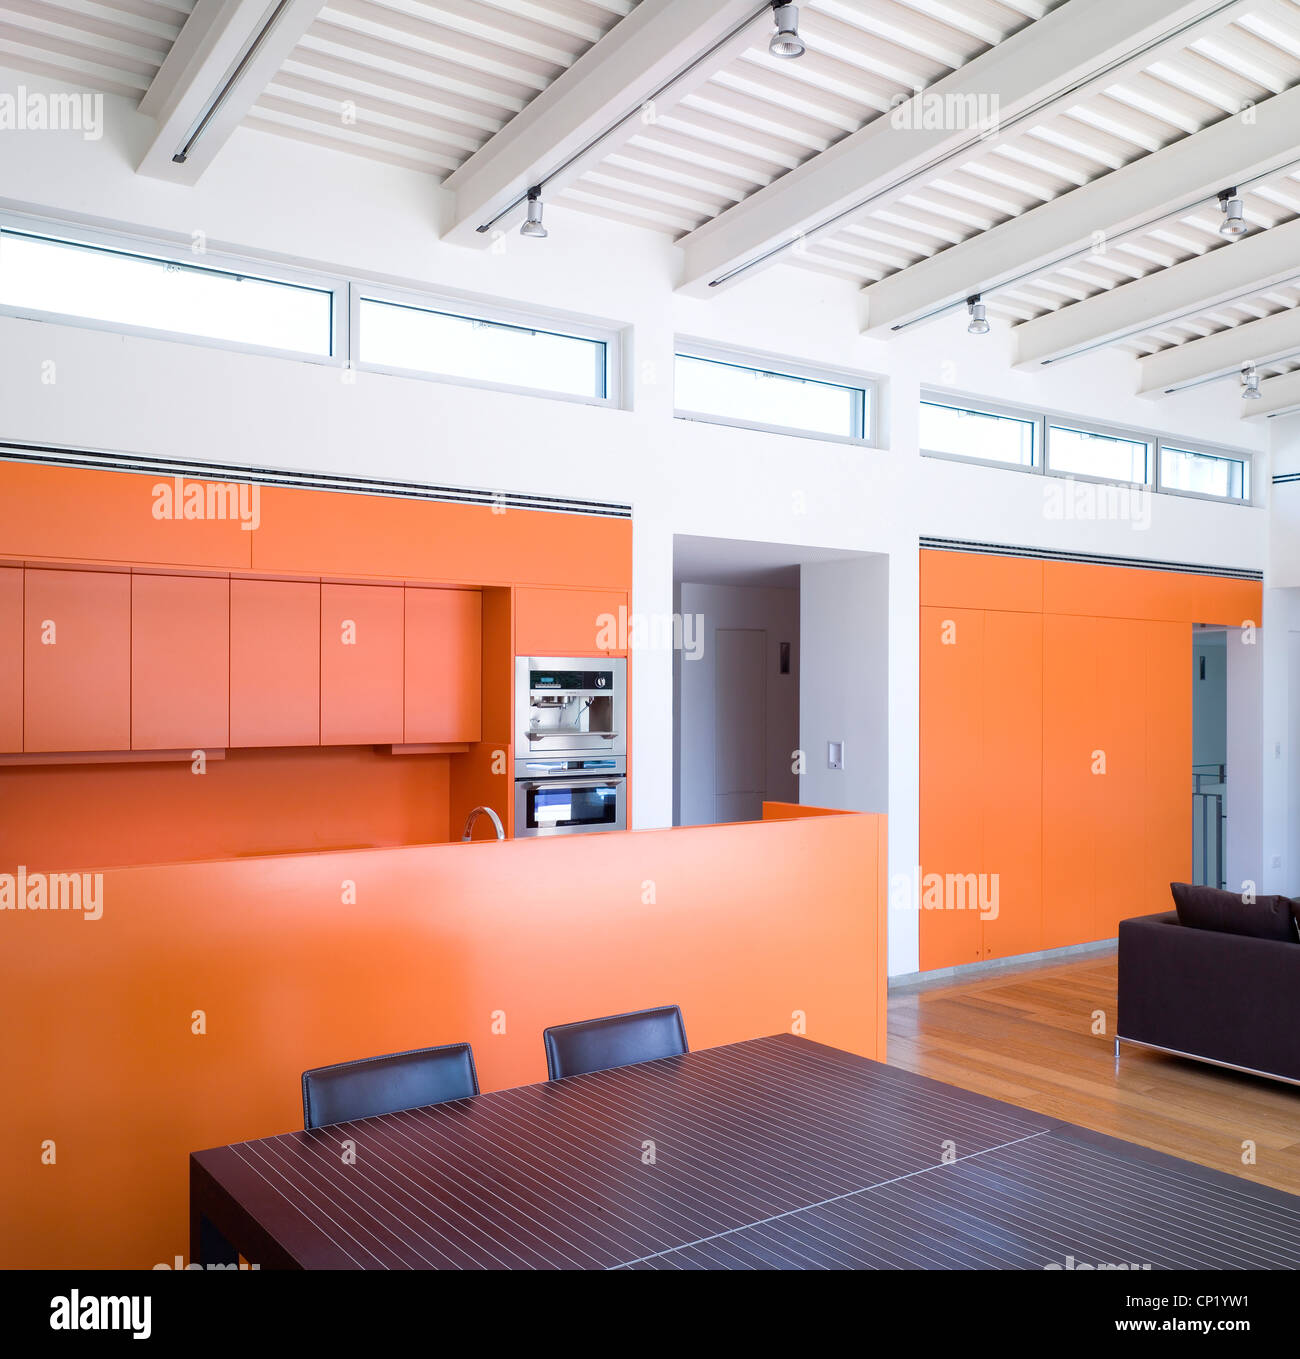 Open Plan Kitchen Dining Living Room With Orange Walls And Line Of Clerestory Windows